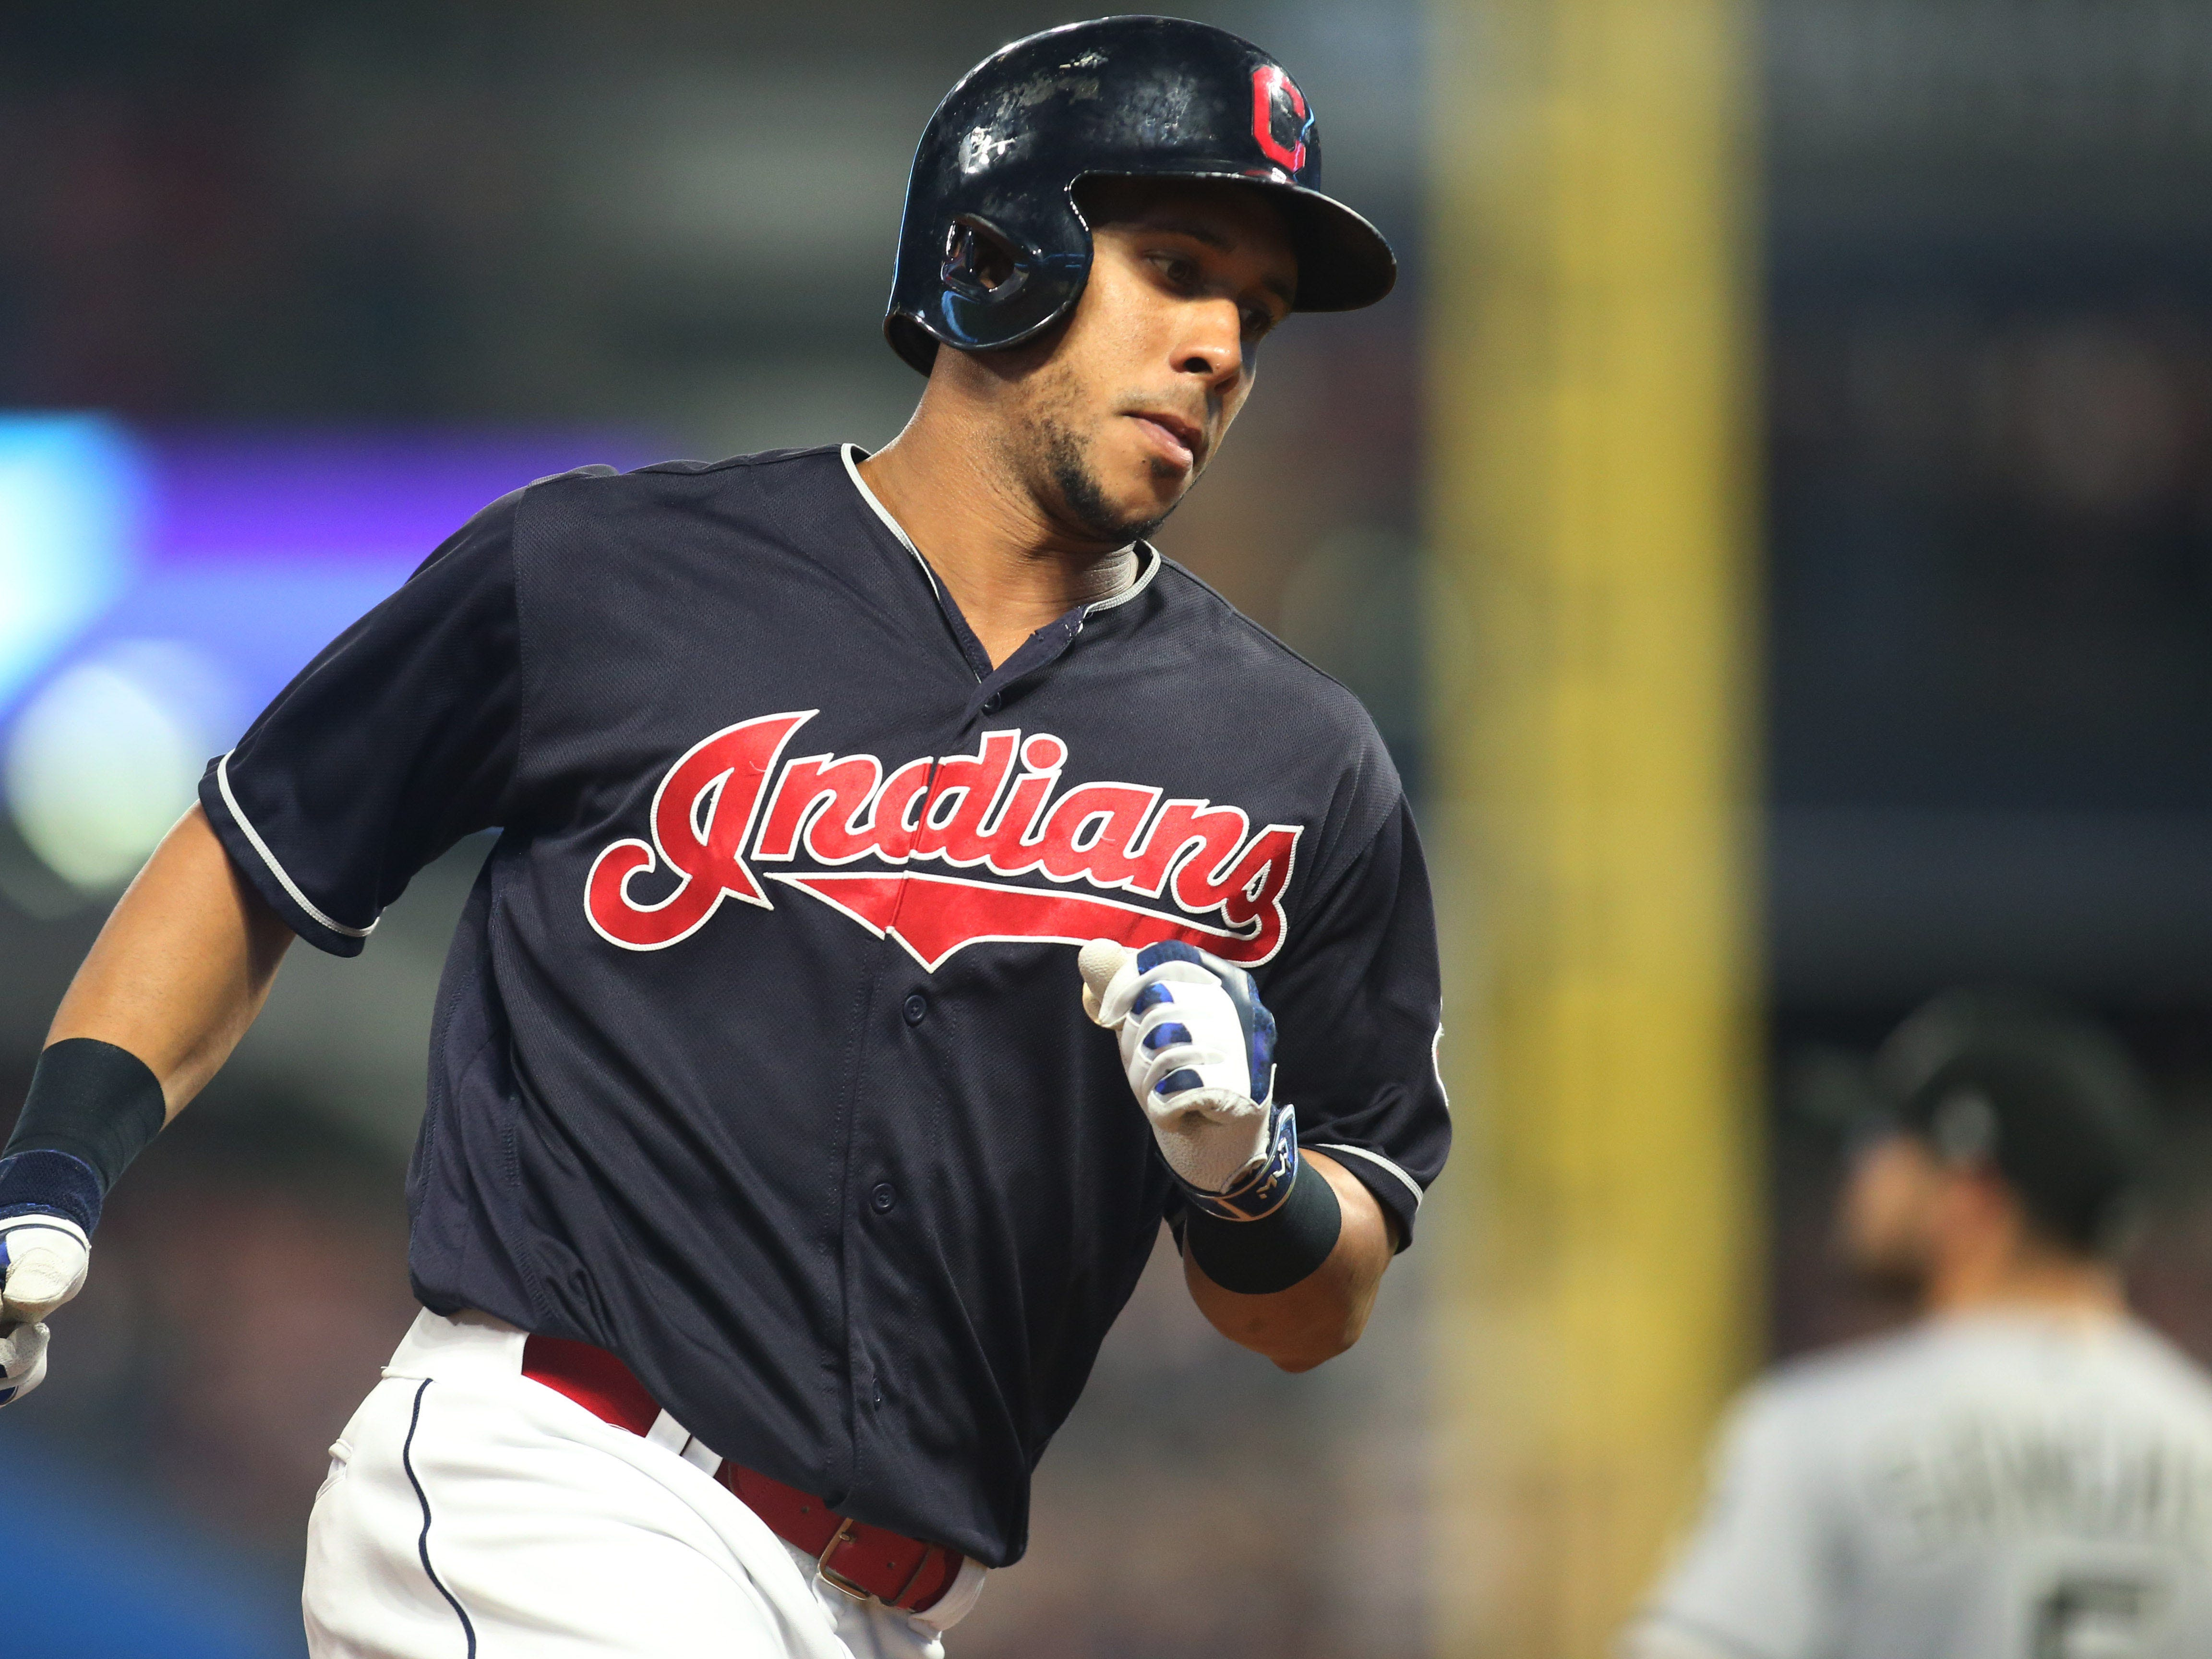 Michael Brantley (31, LF, Indians) – signed with Astros, two years/$32 million